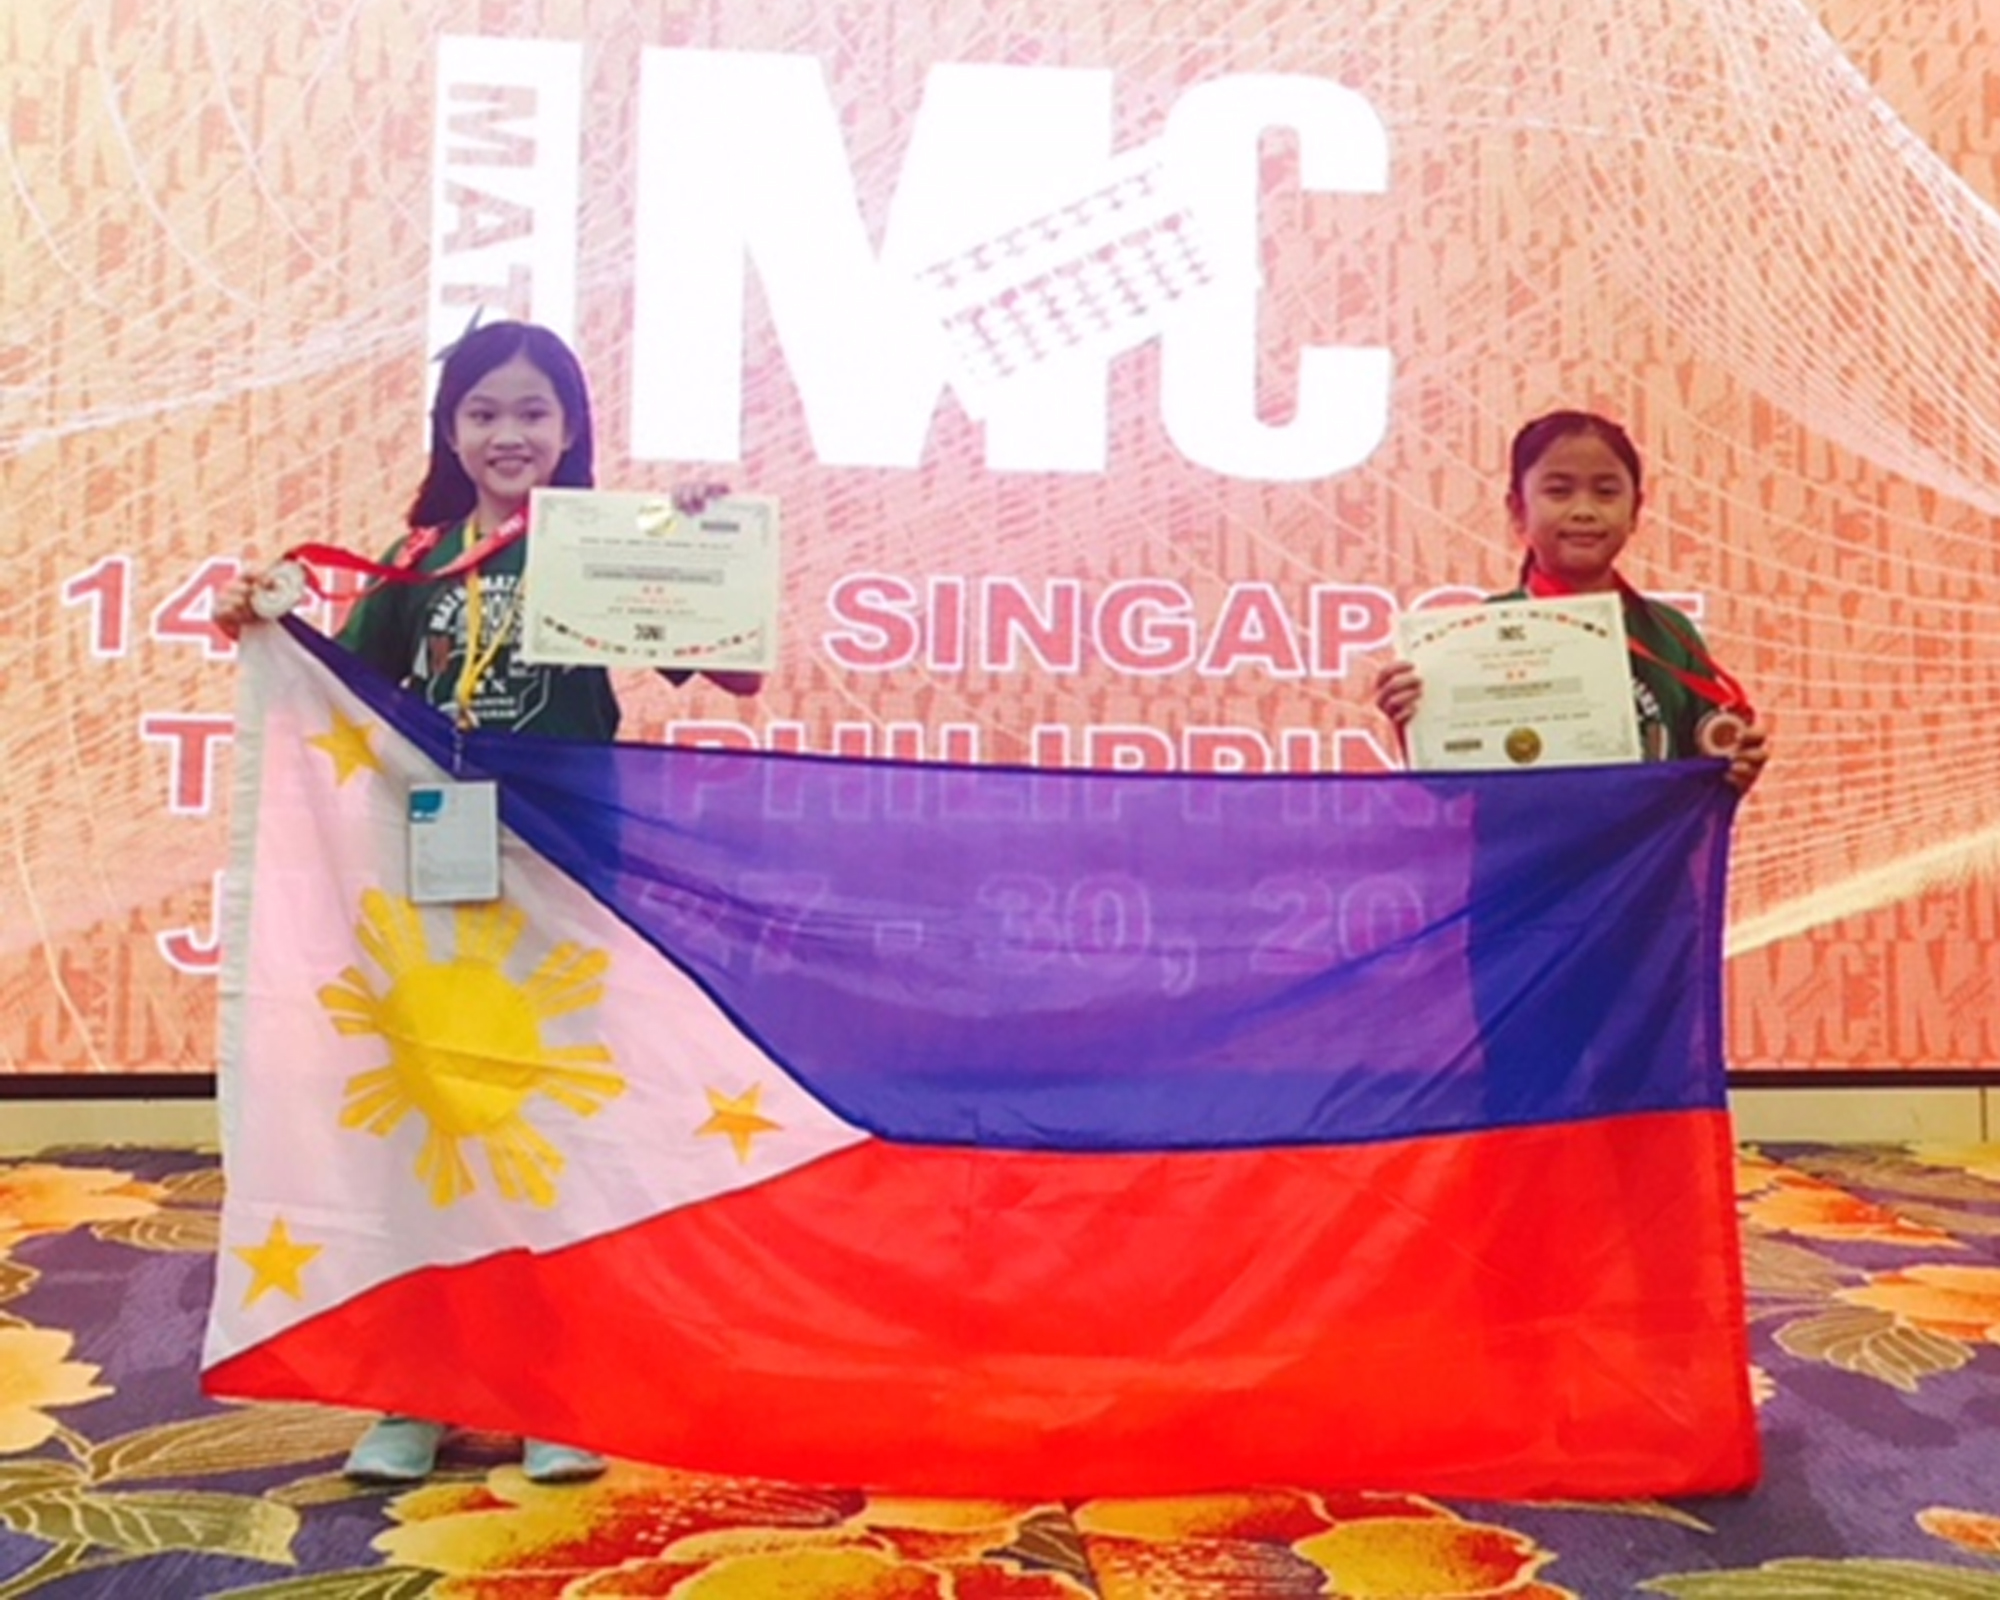 MC LS young math achiever shines in Singapore, Indonesia